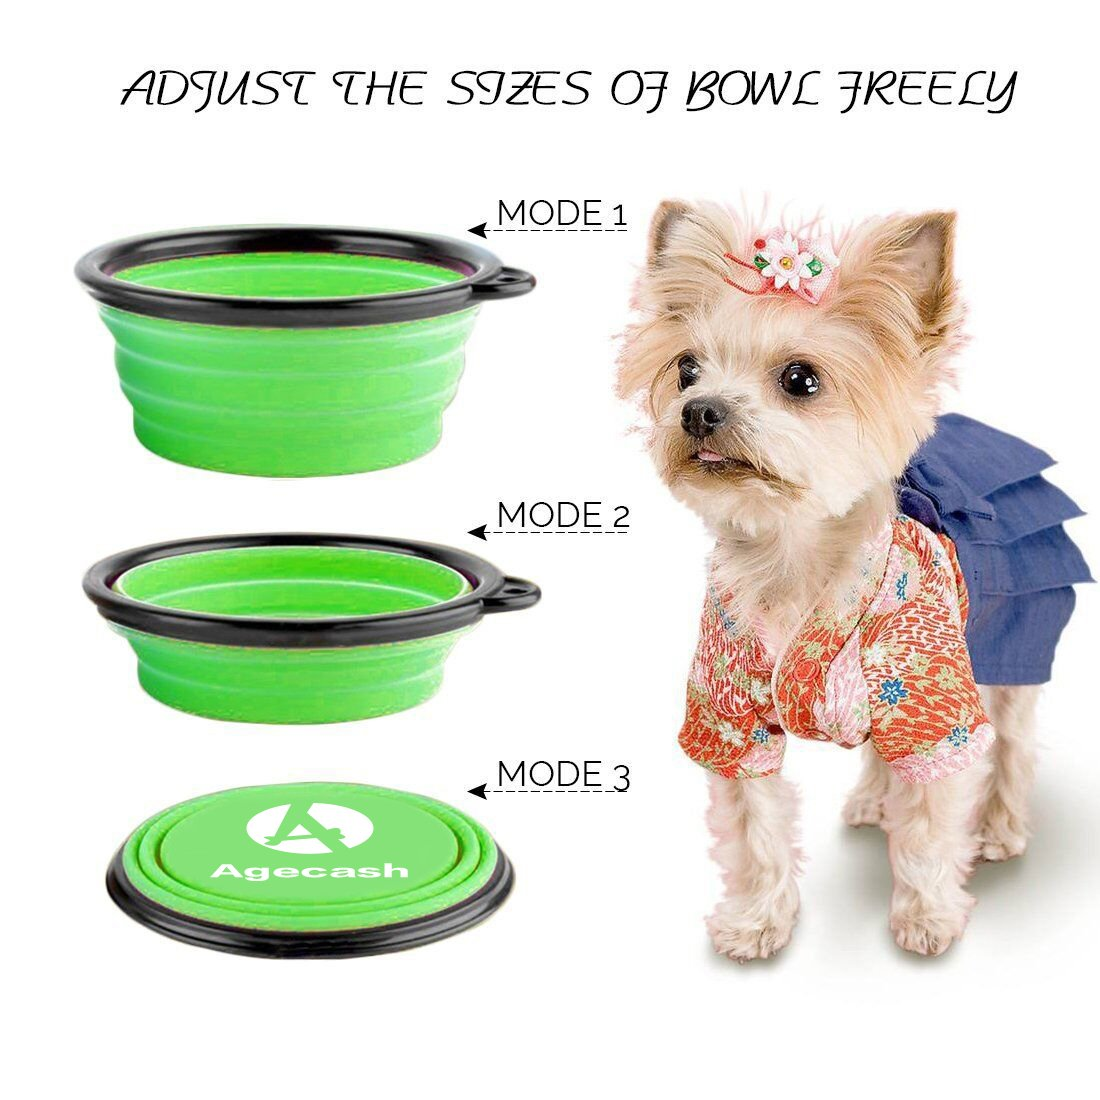 for Dog Cat Bowls-with 6-Color Set Agecash Collapsible Dog Bowl,6 Pack Silicone Portable Travel Dog Bowls with Carabiner Clip